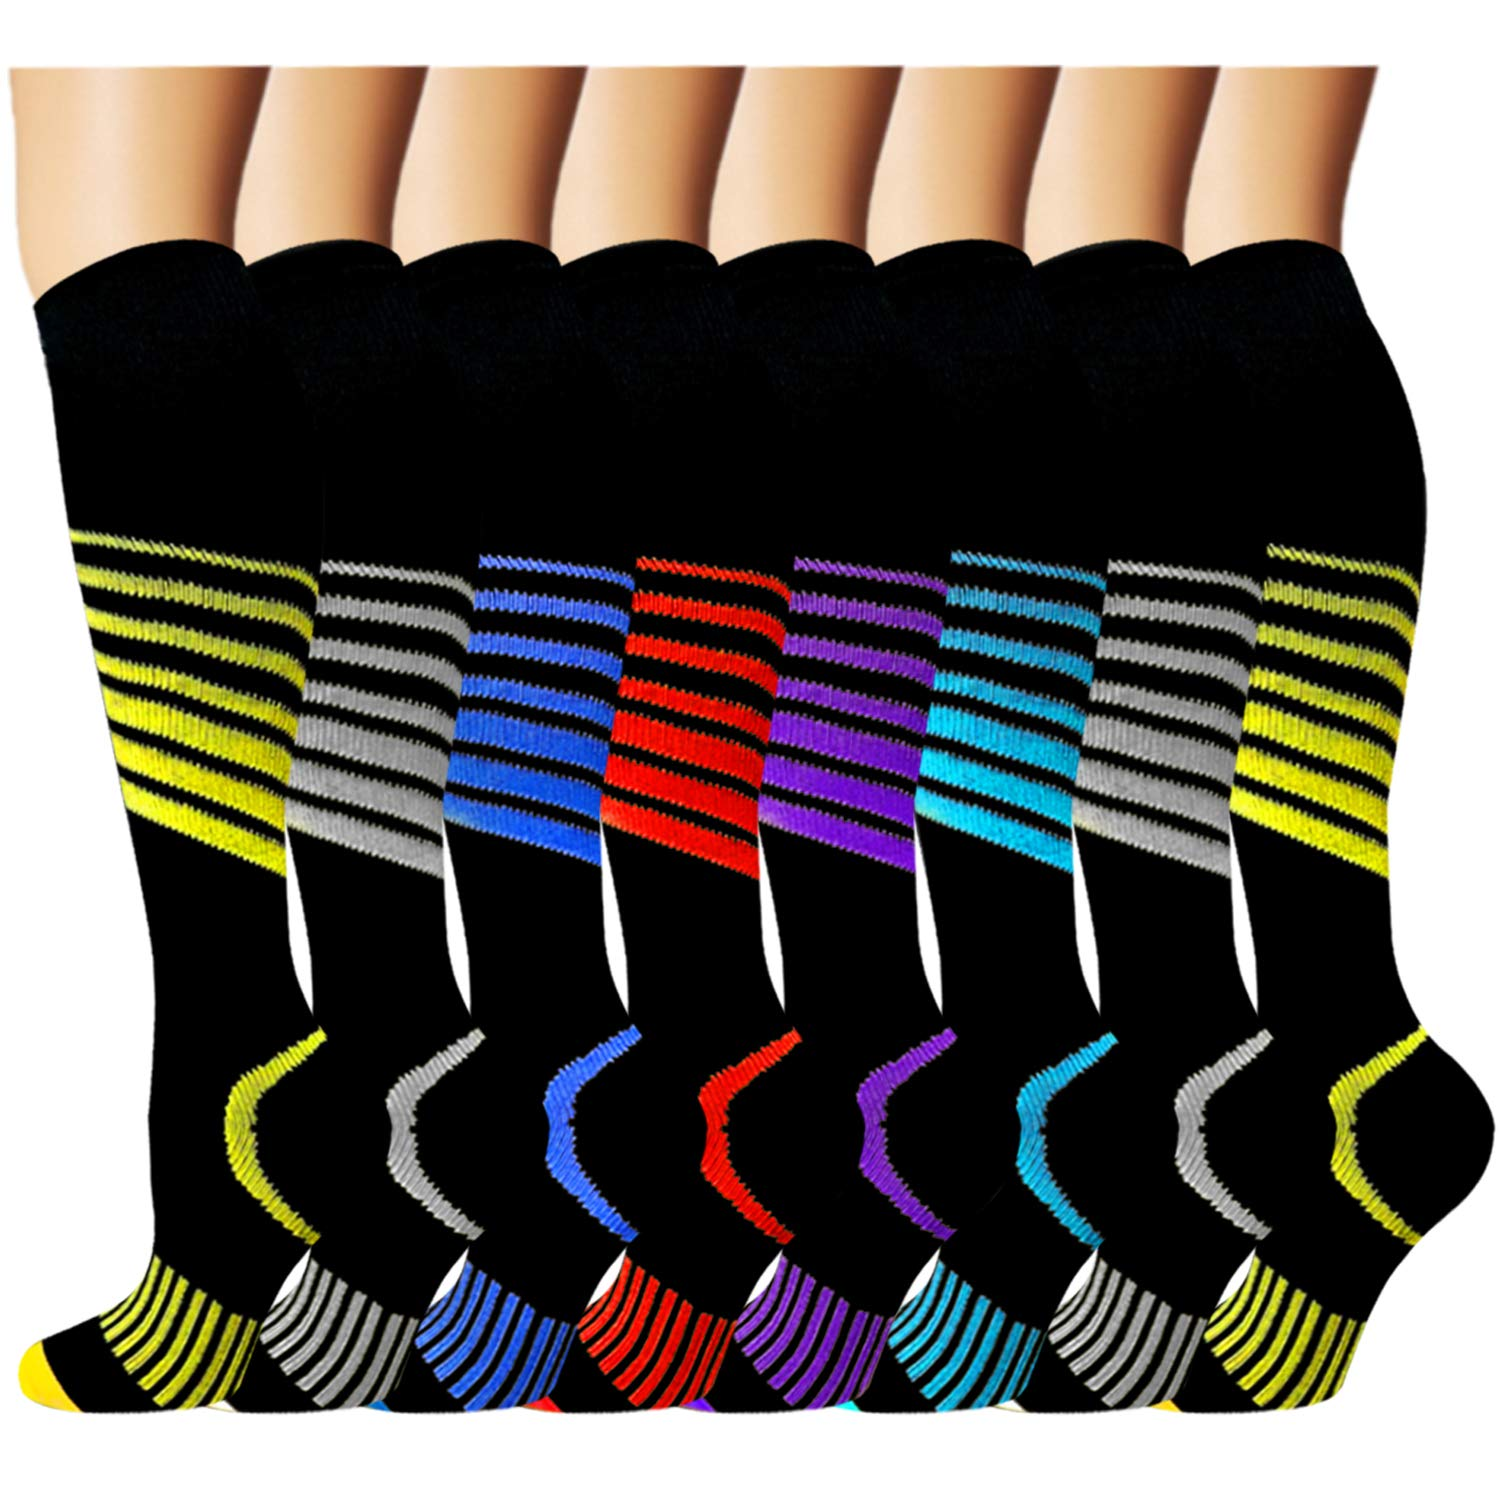 8 Pack Copper Knee High Compression Socks For Men & Women-Best For Running,Athletic,Medical,Pregnancy and Travel -15-20mmHg by Iseasoo